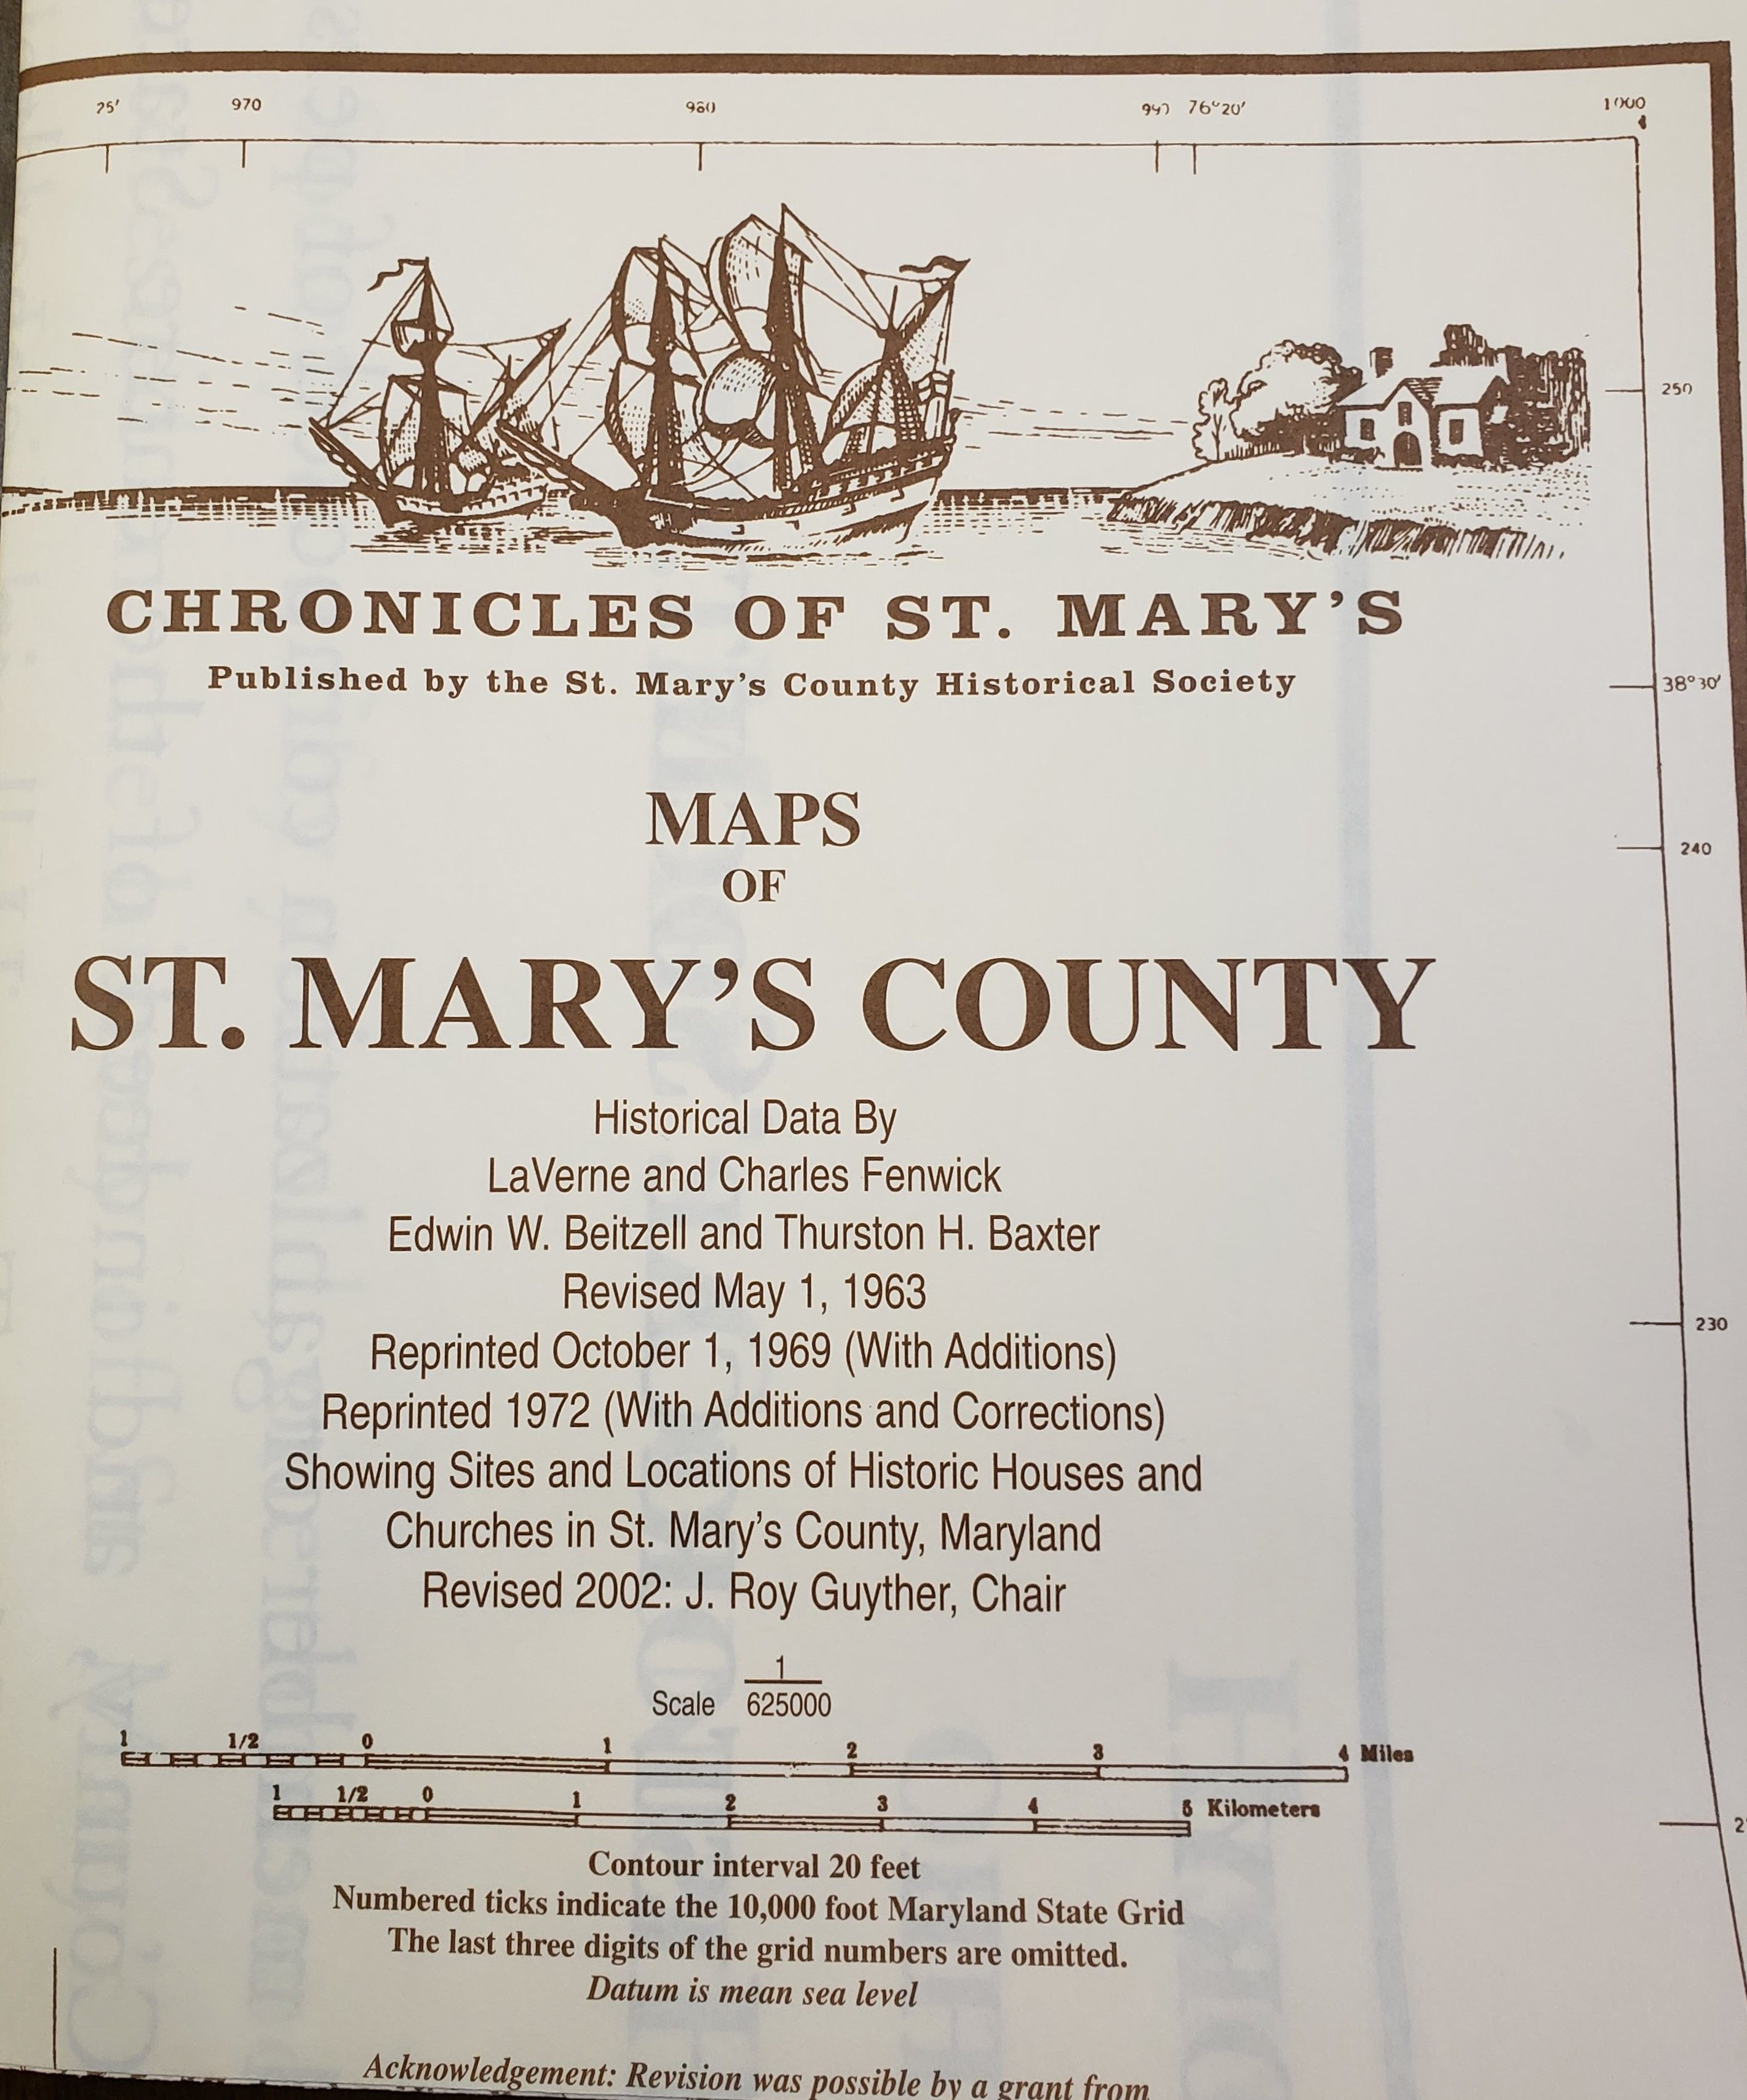 Maps of St Mary's County